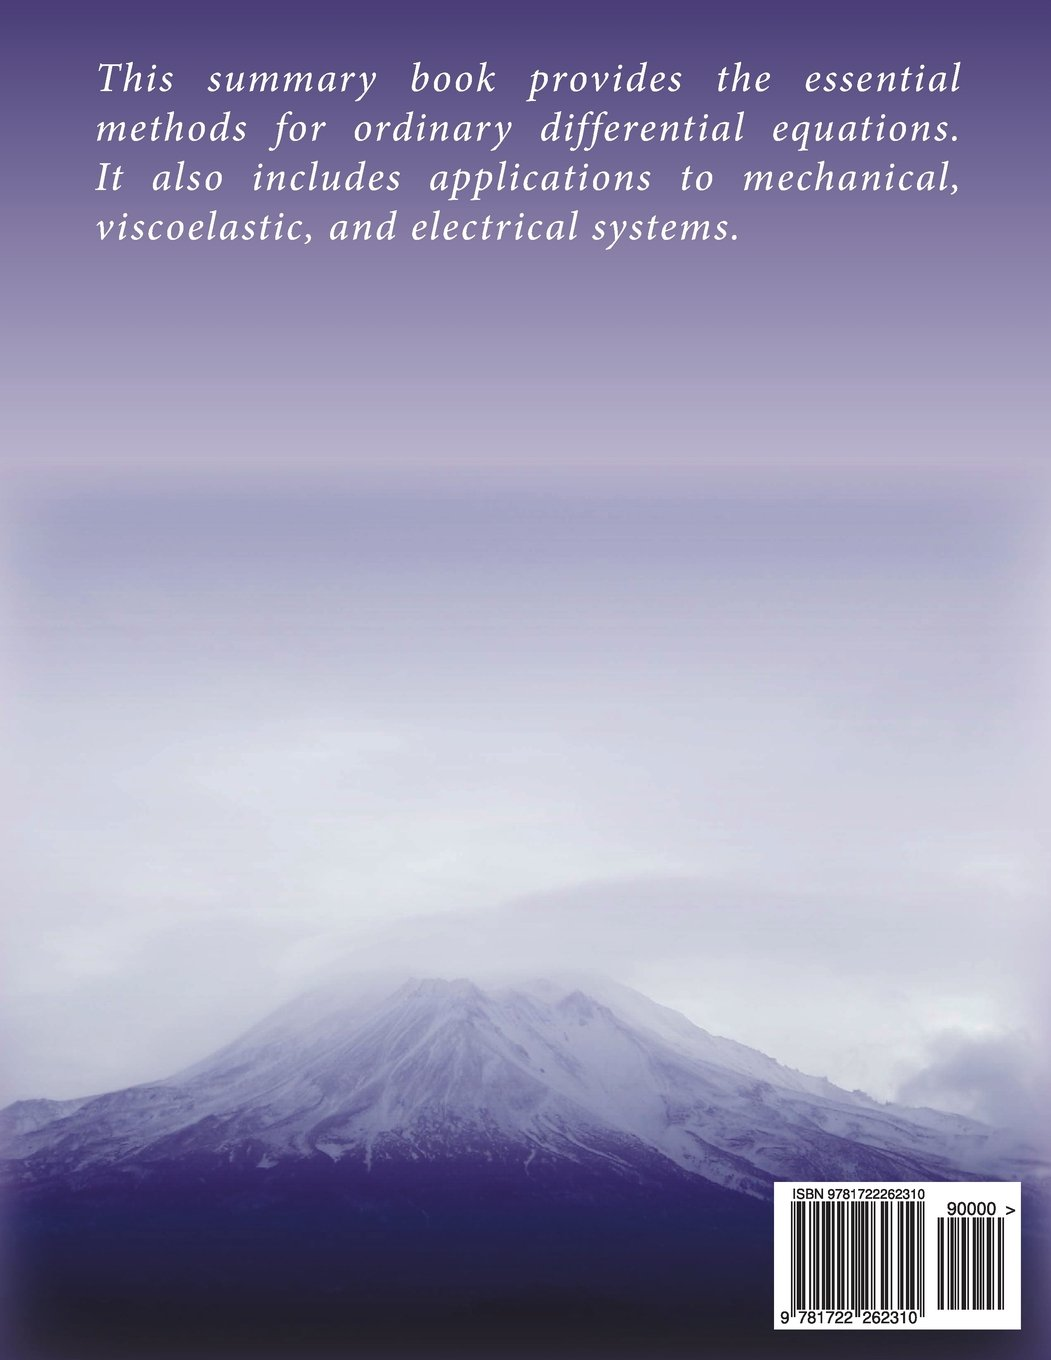 A Summary of Ordinary Differential Equations: Aamer Haque: 9781722262310:  Amazon.com: Books